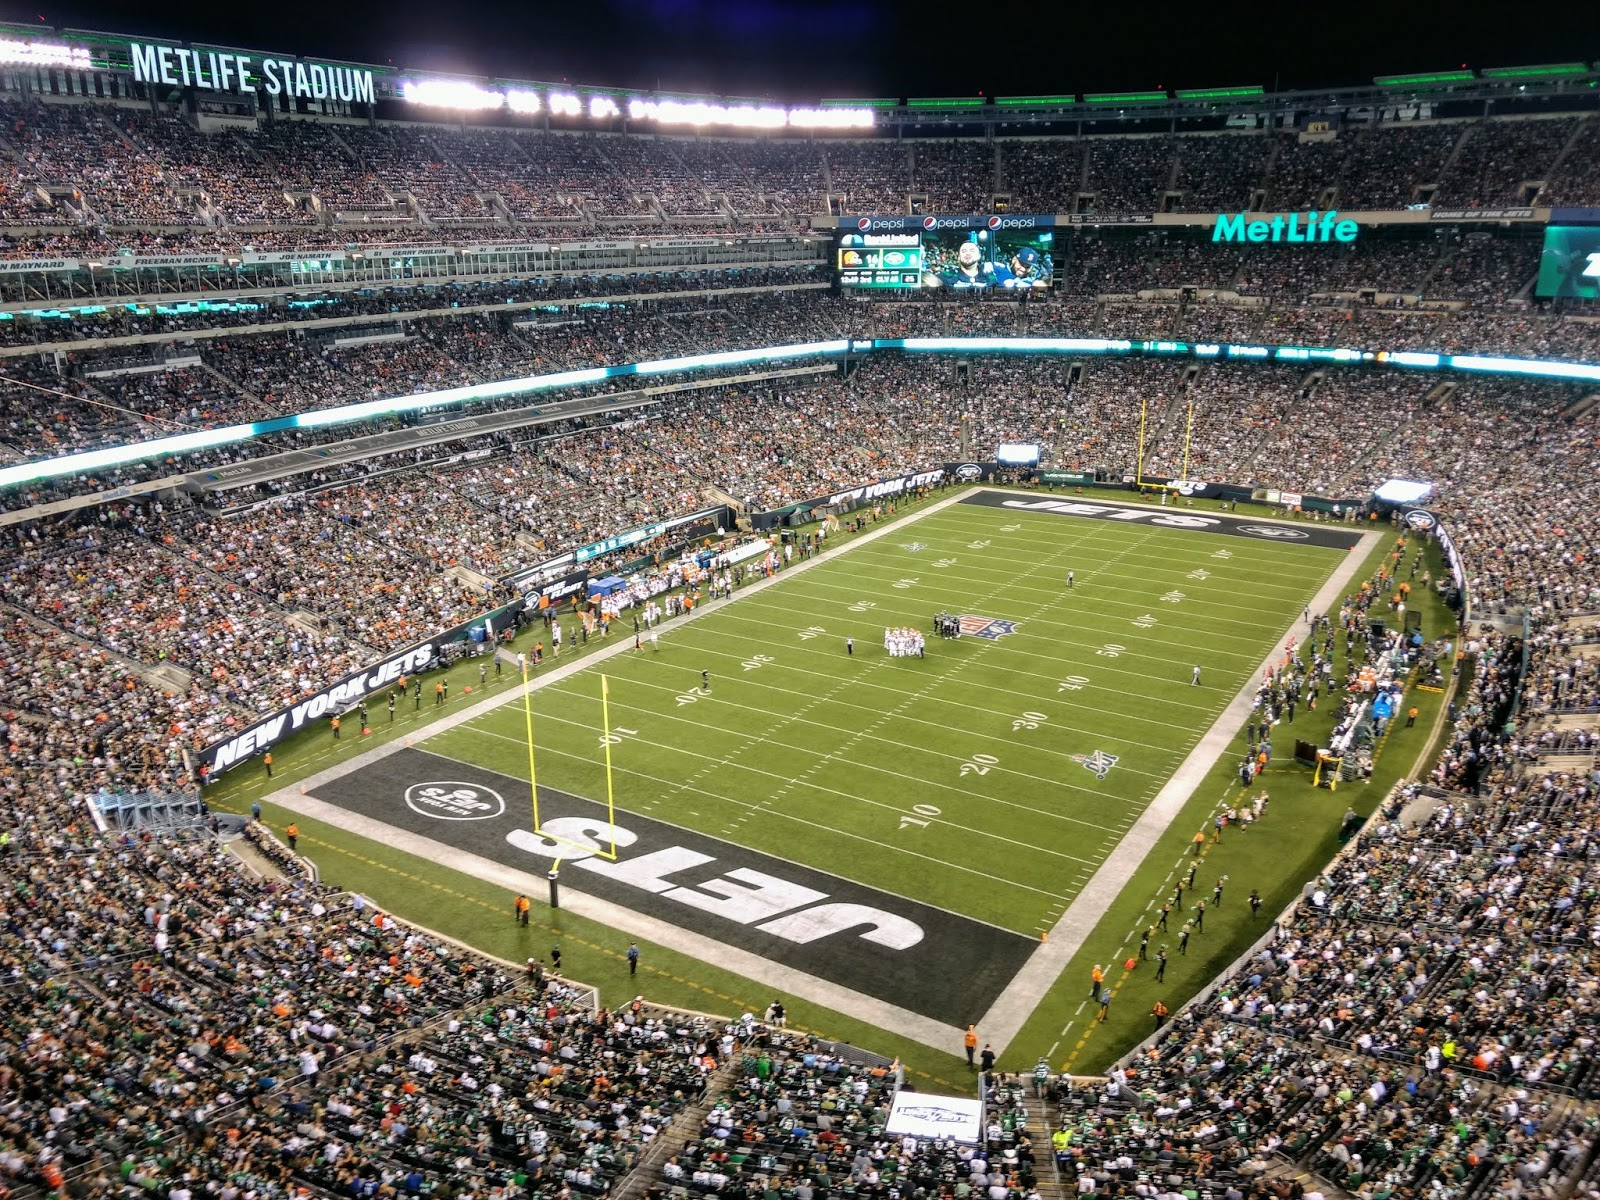 Scolin's Sports Venues Visited: #298: MetLife Stadium, East Rutherford, NJ